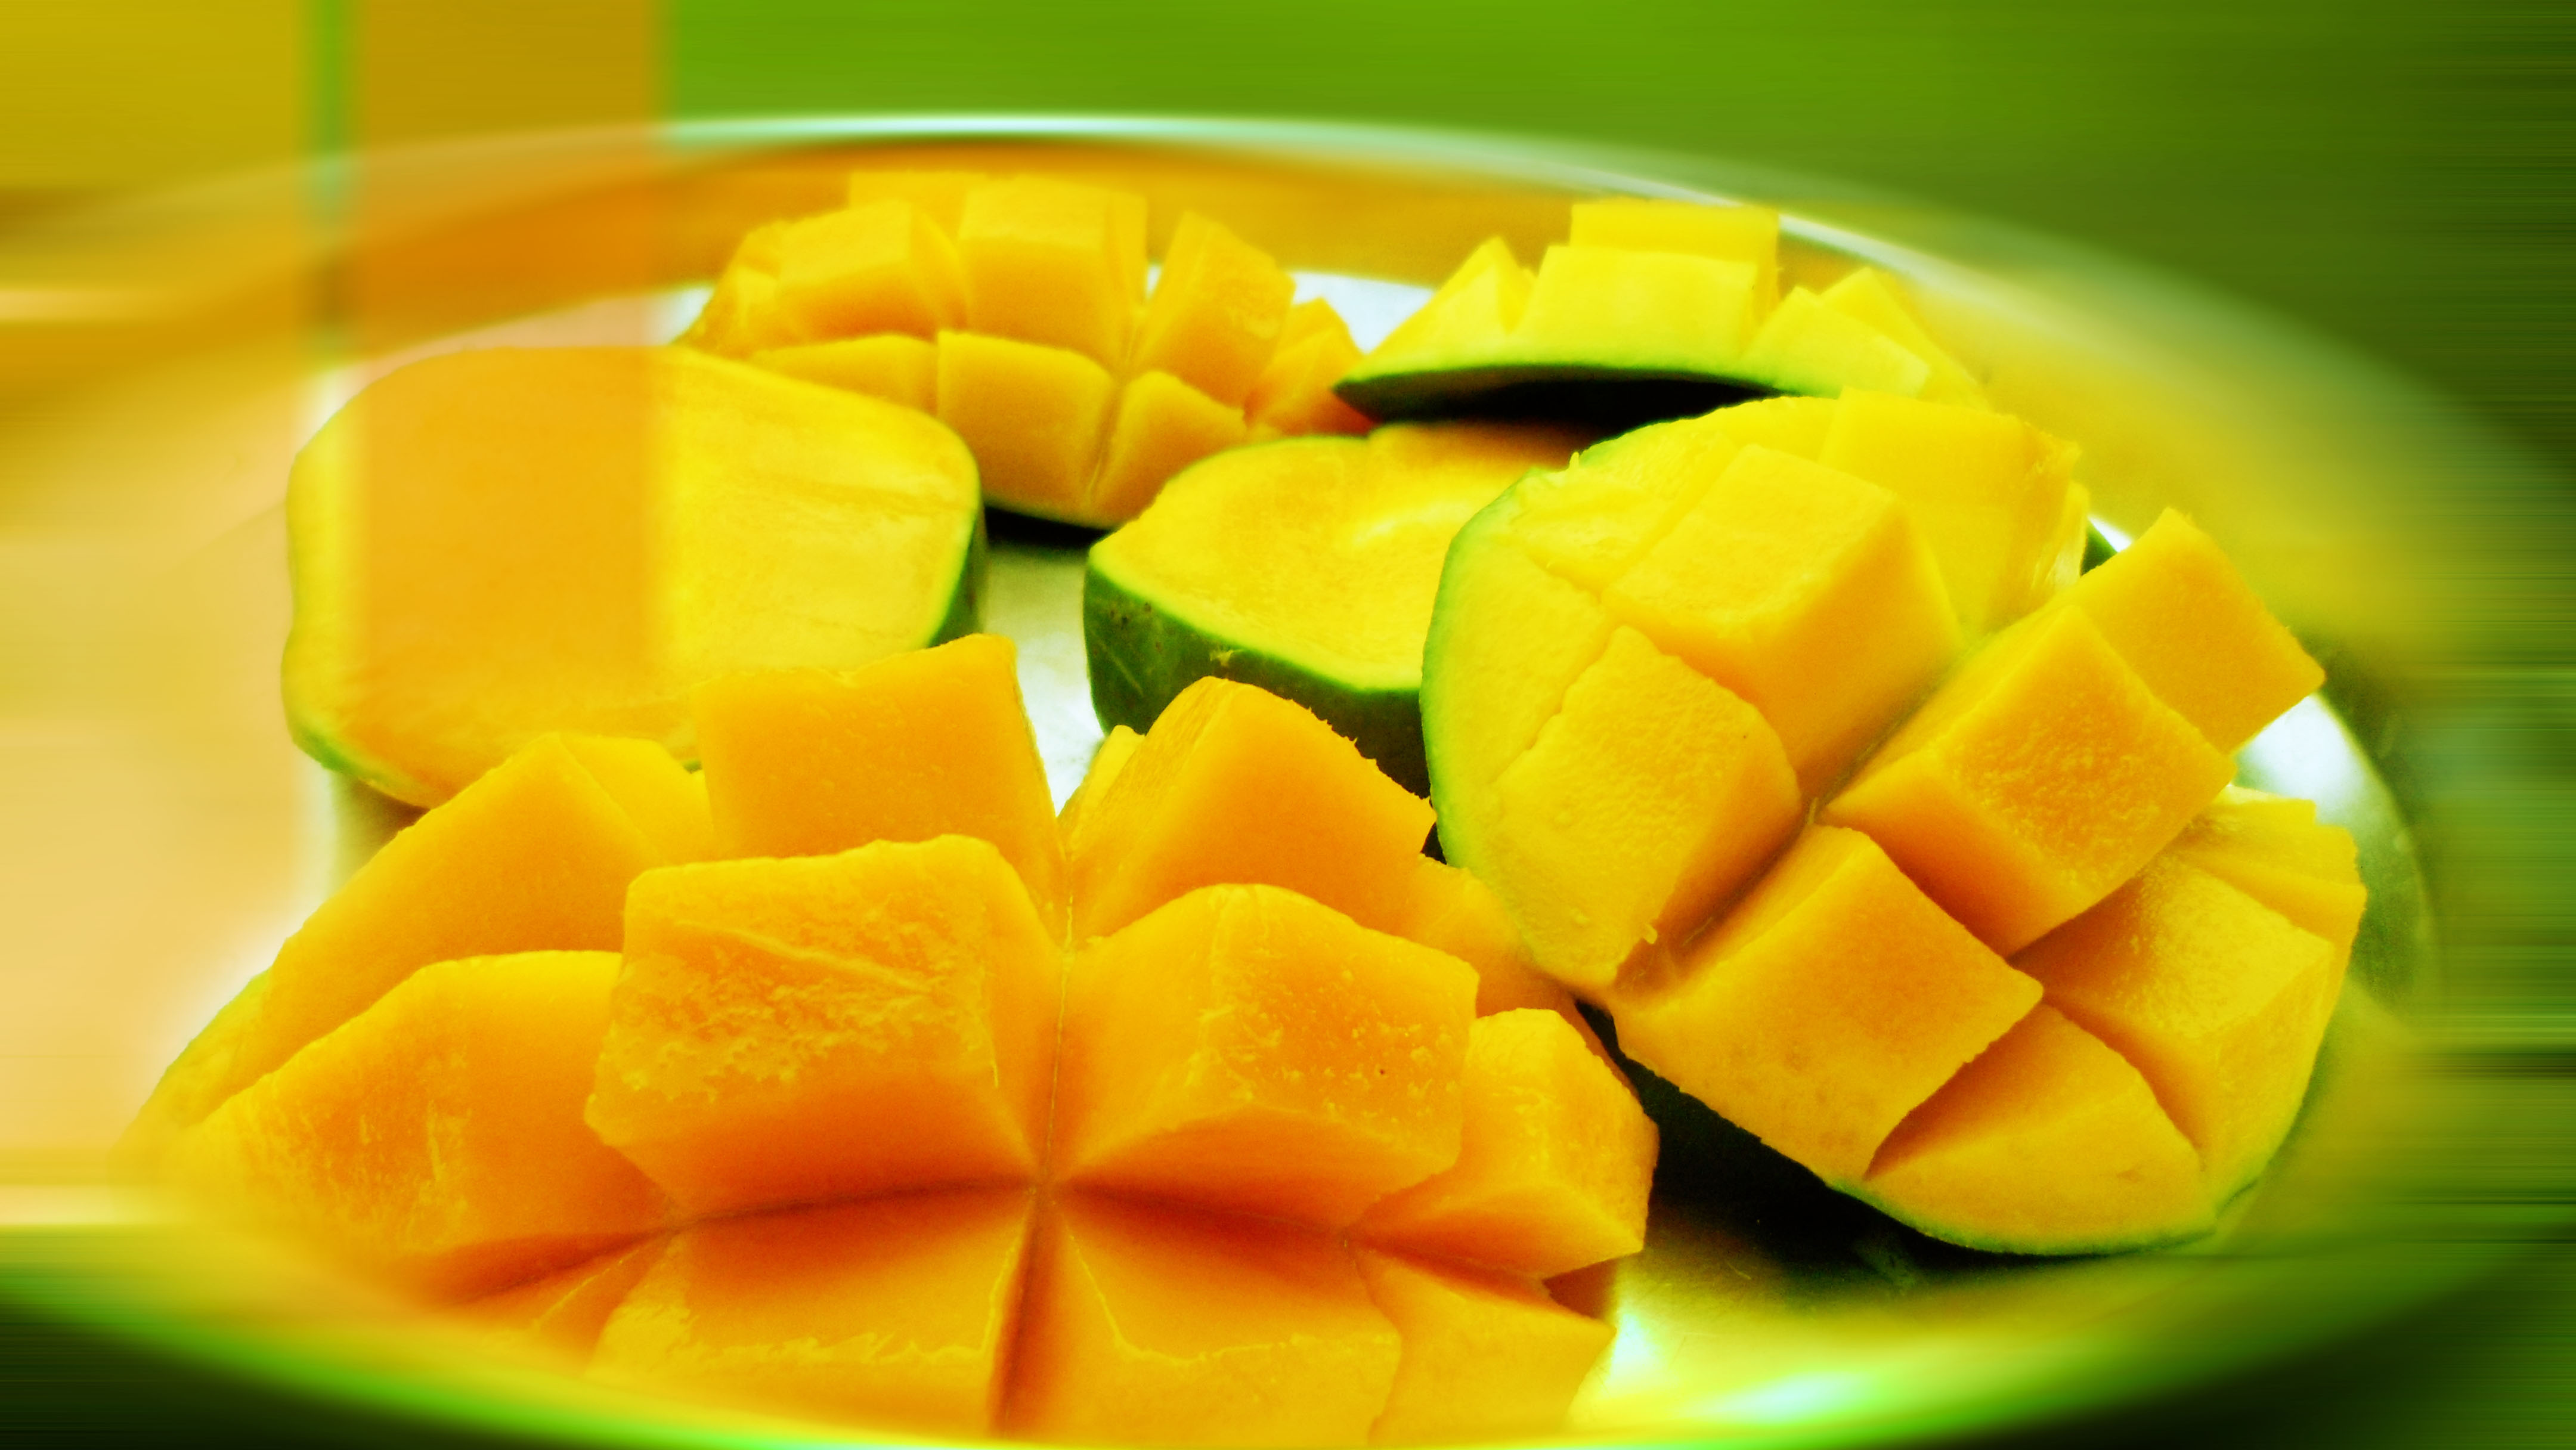 4 Mango HD Wallpapers | Backgrounds - Wallpaper Abyss Quotes Backgrounds For Facebook